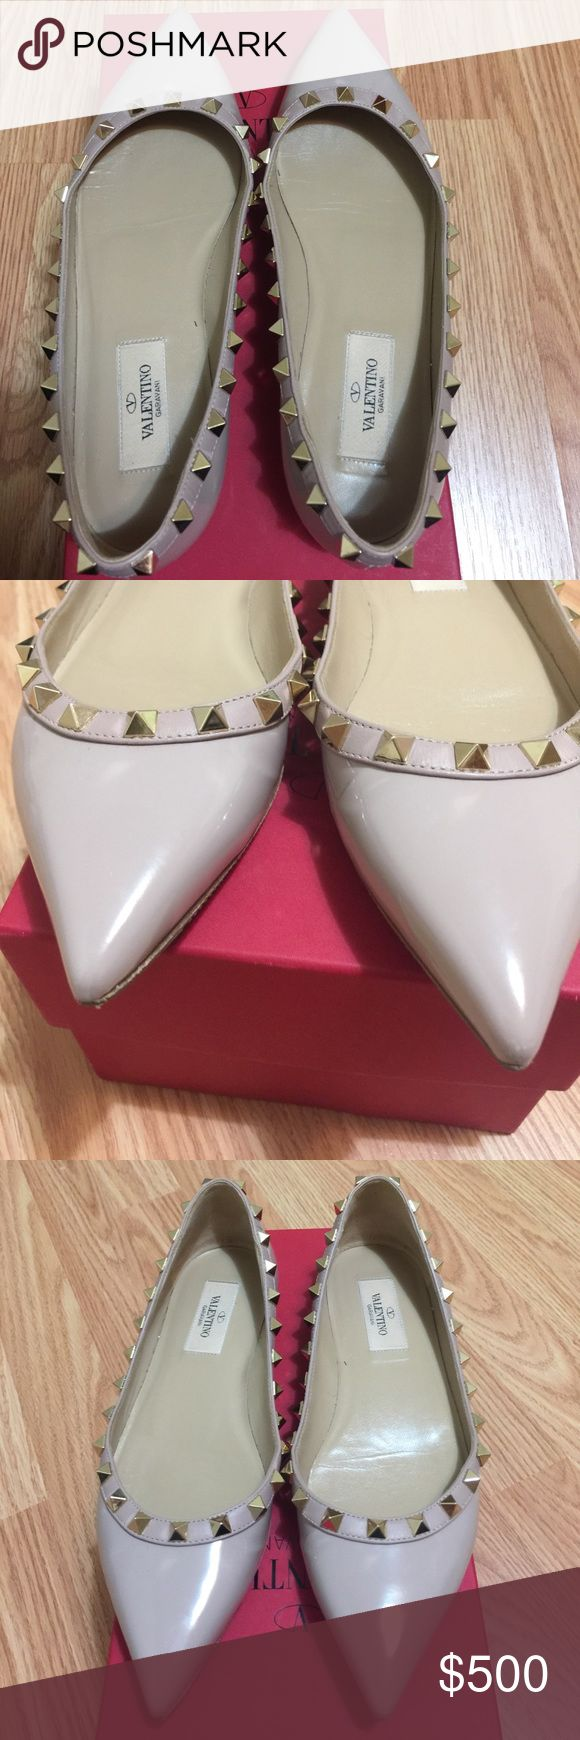 Valentino rock stud ballerina Really nice and excellent condition, had these professionally soled to keep from showing wear. Come with original box, dust bag , authentic card and extra rockstud. Price is firm Valentino Shoes Flats & Loafers